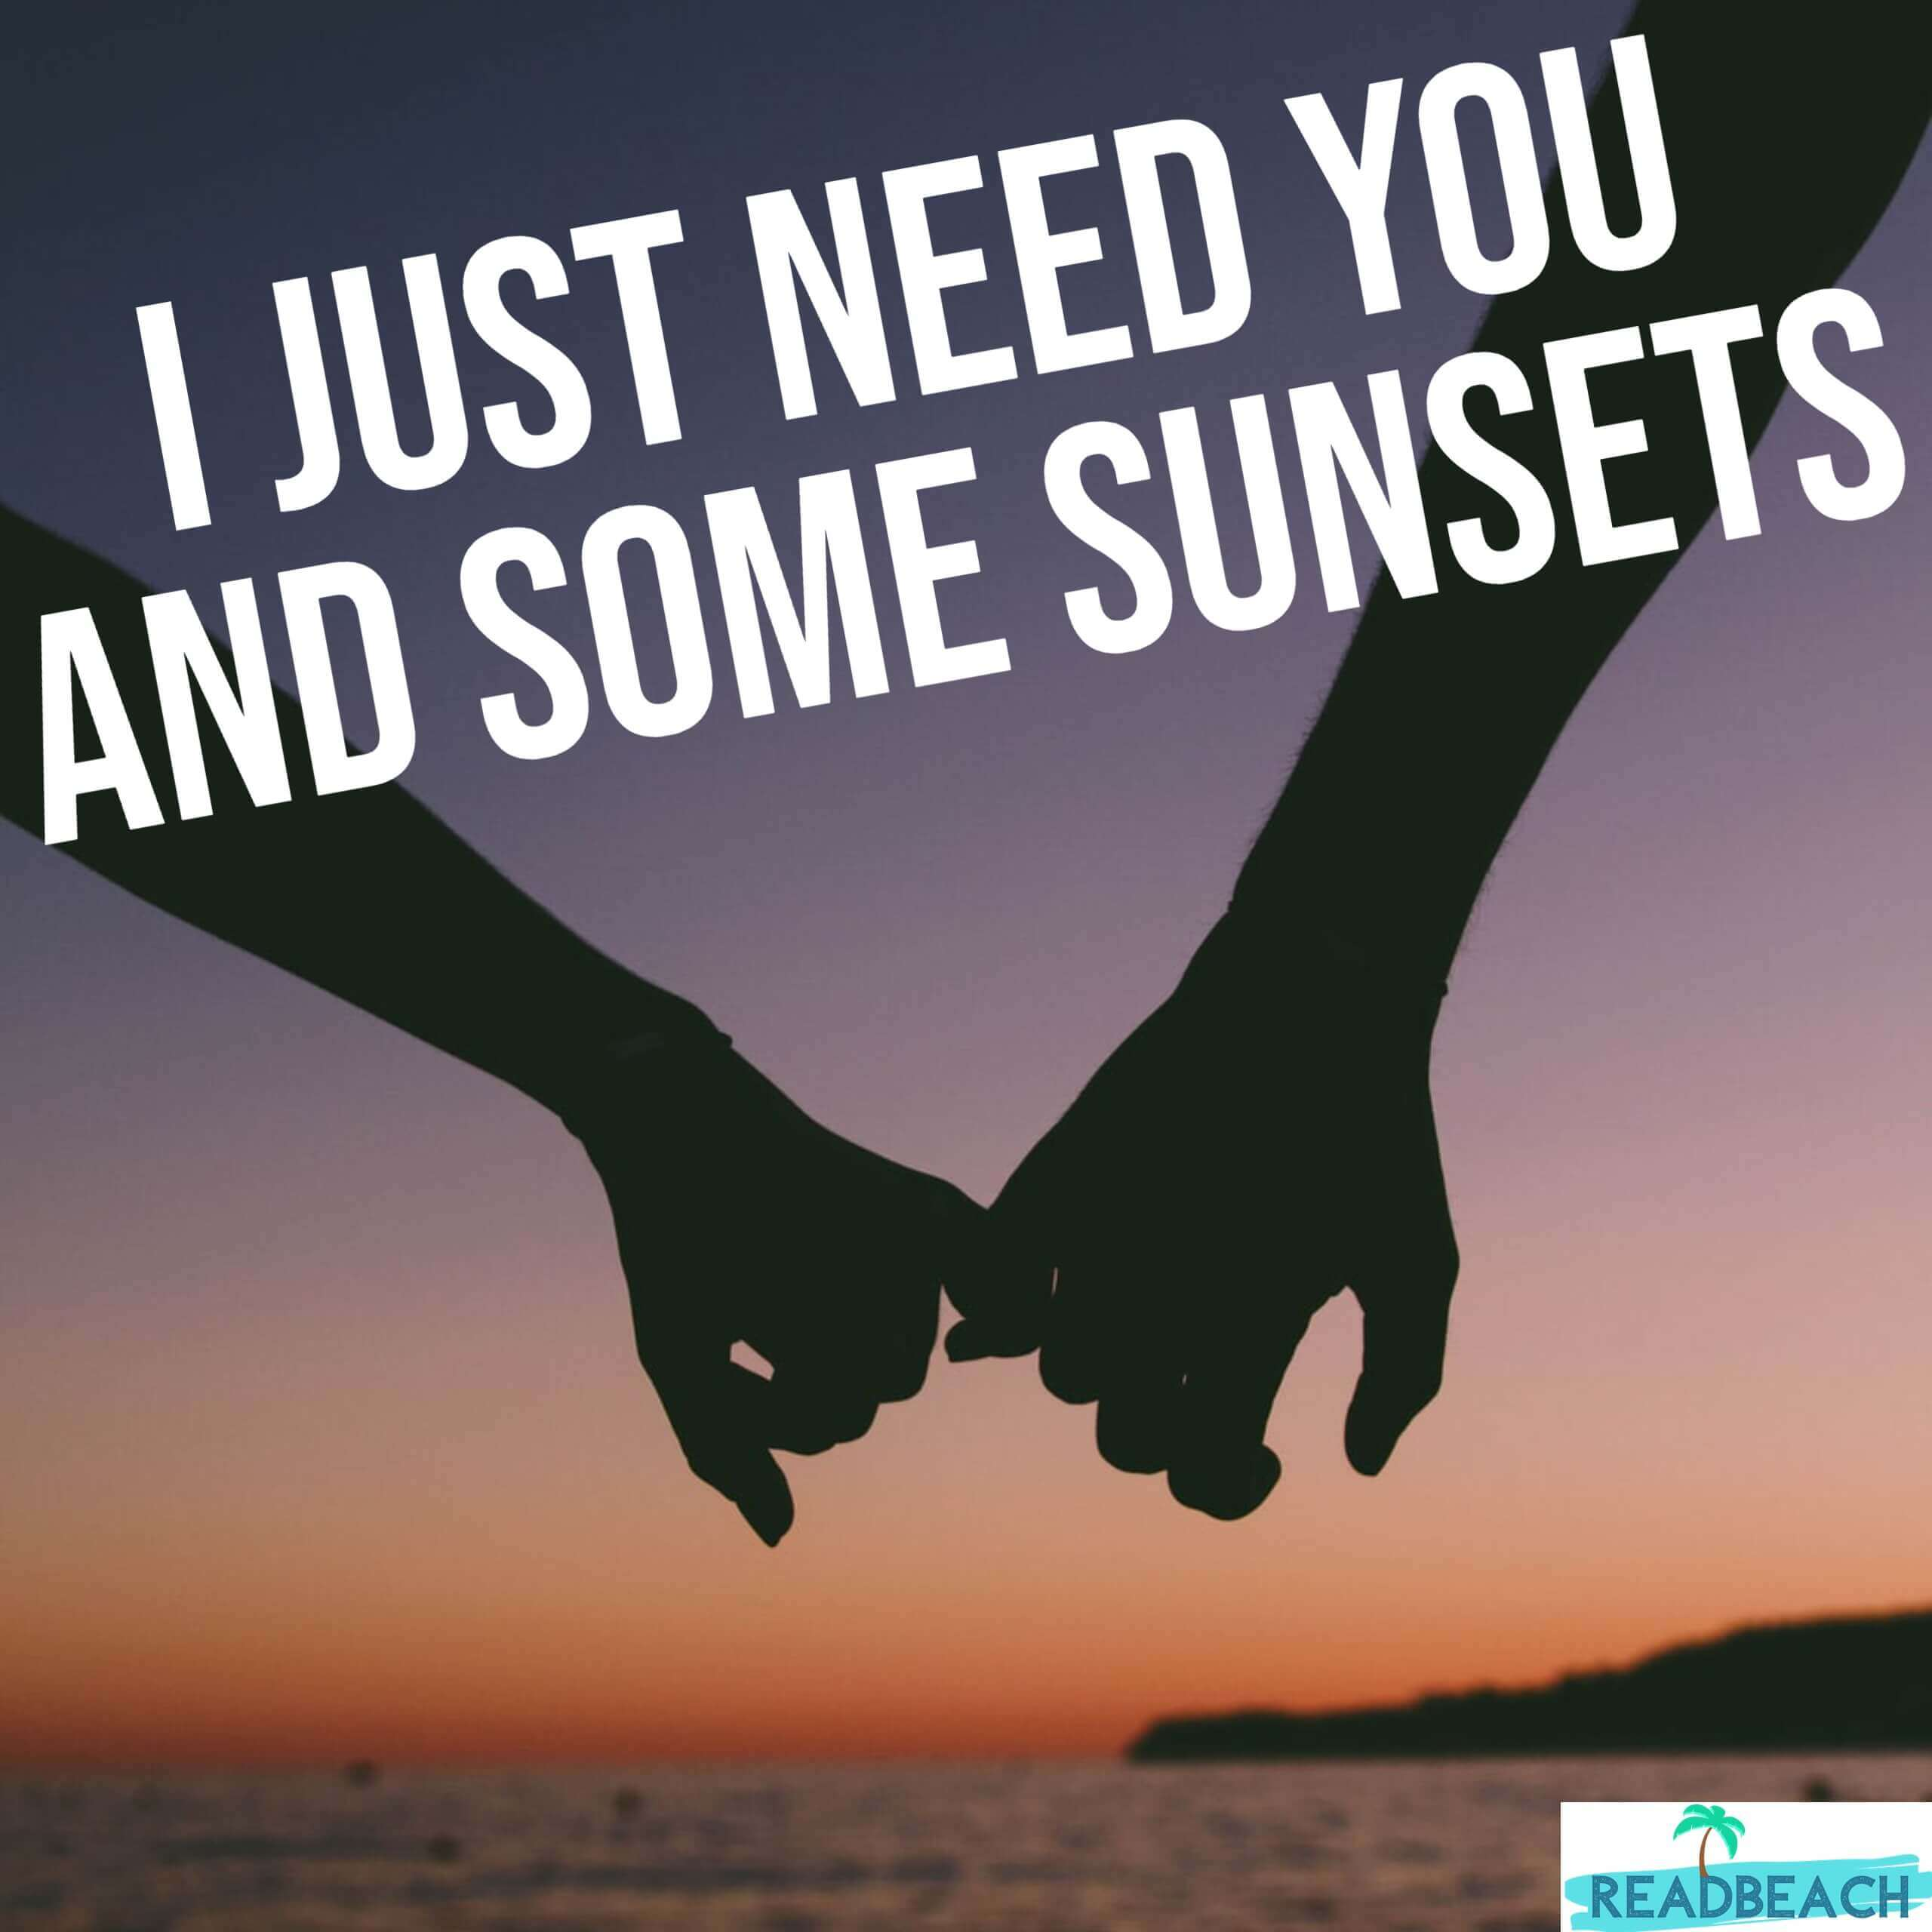 3 Sunshine Quotes - I just need you and some sunsets